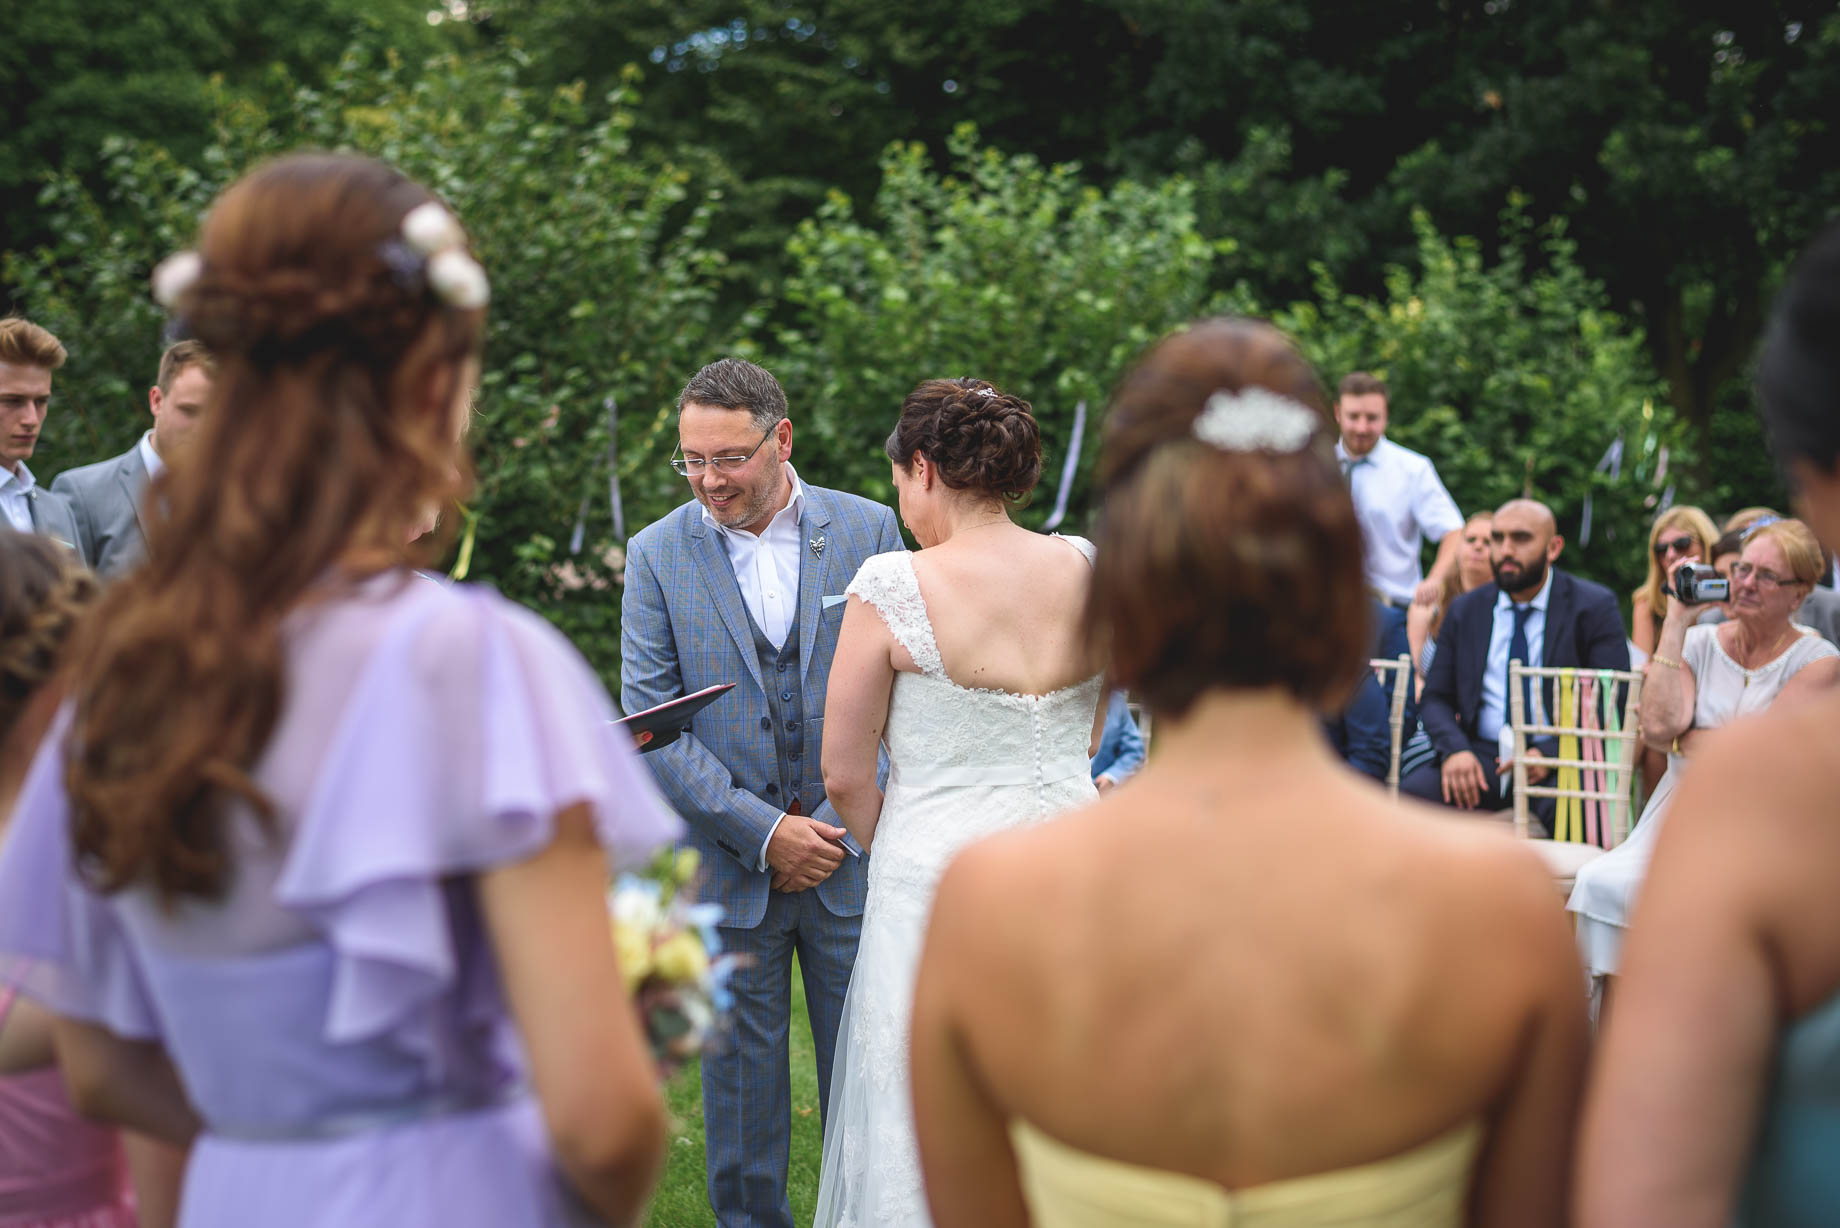 Luton Hoo wedding photography by Guy Collier Photography - Lauren and Gem (64 of 178)